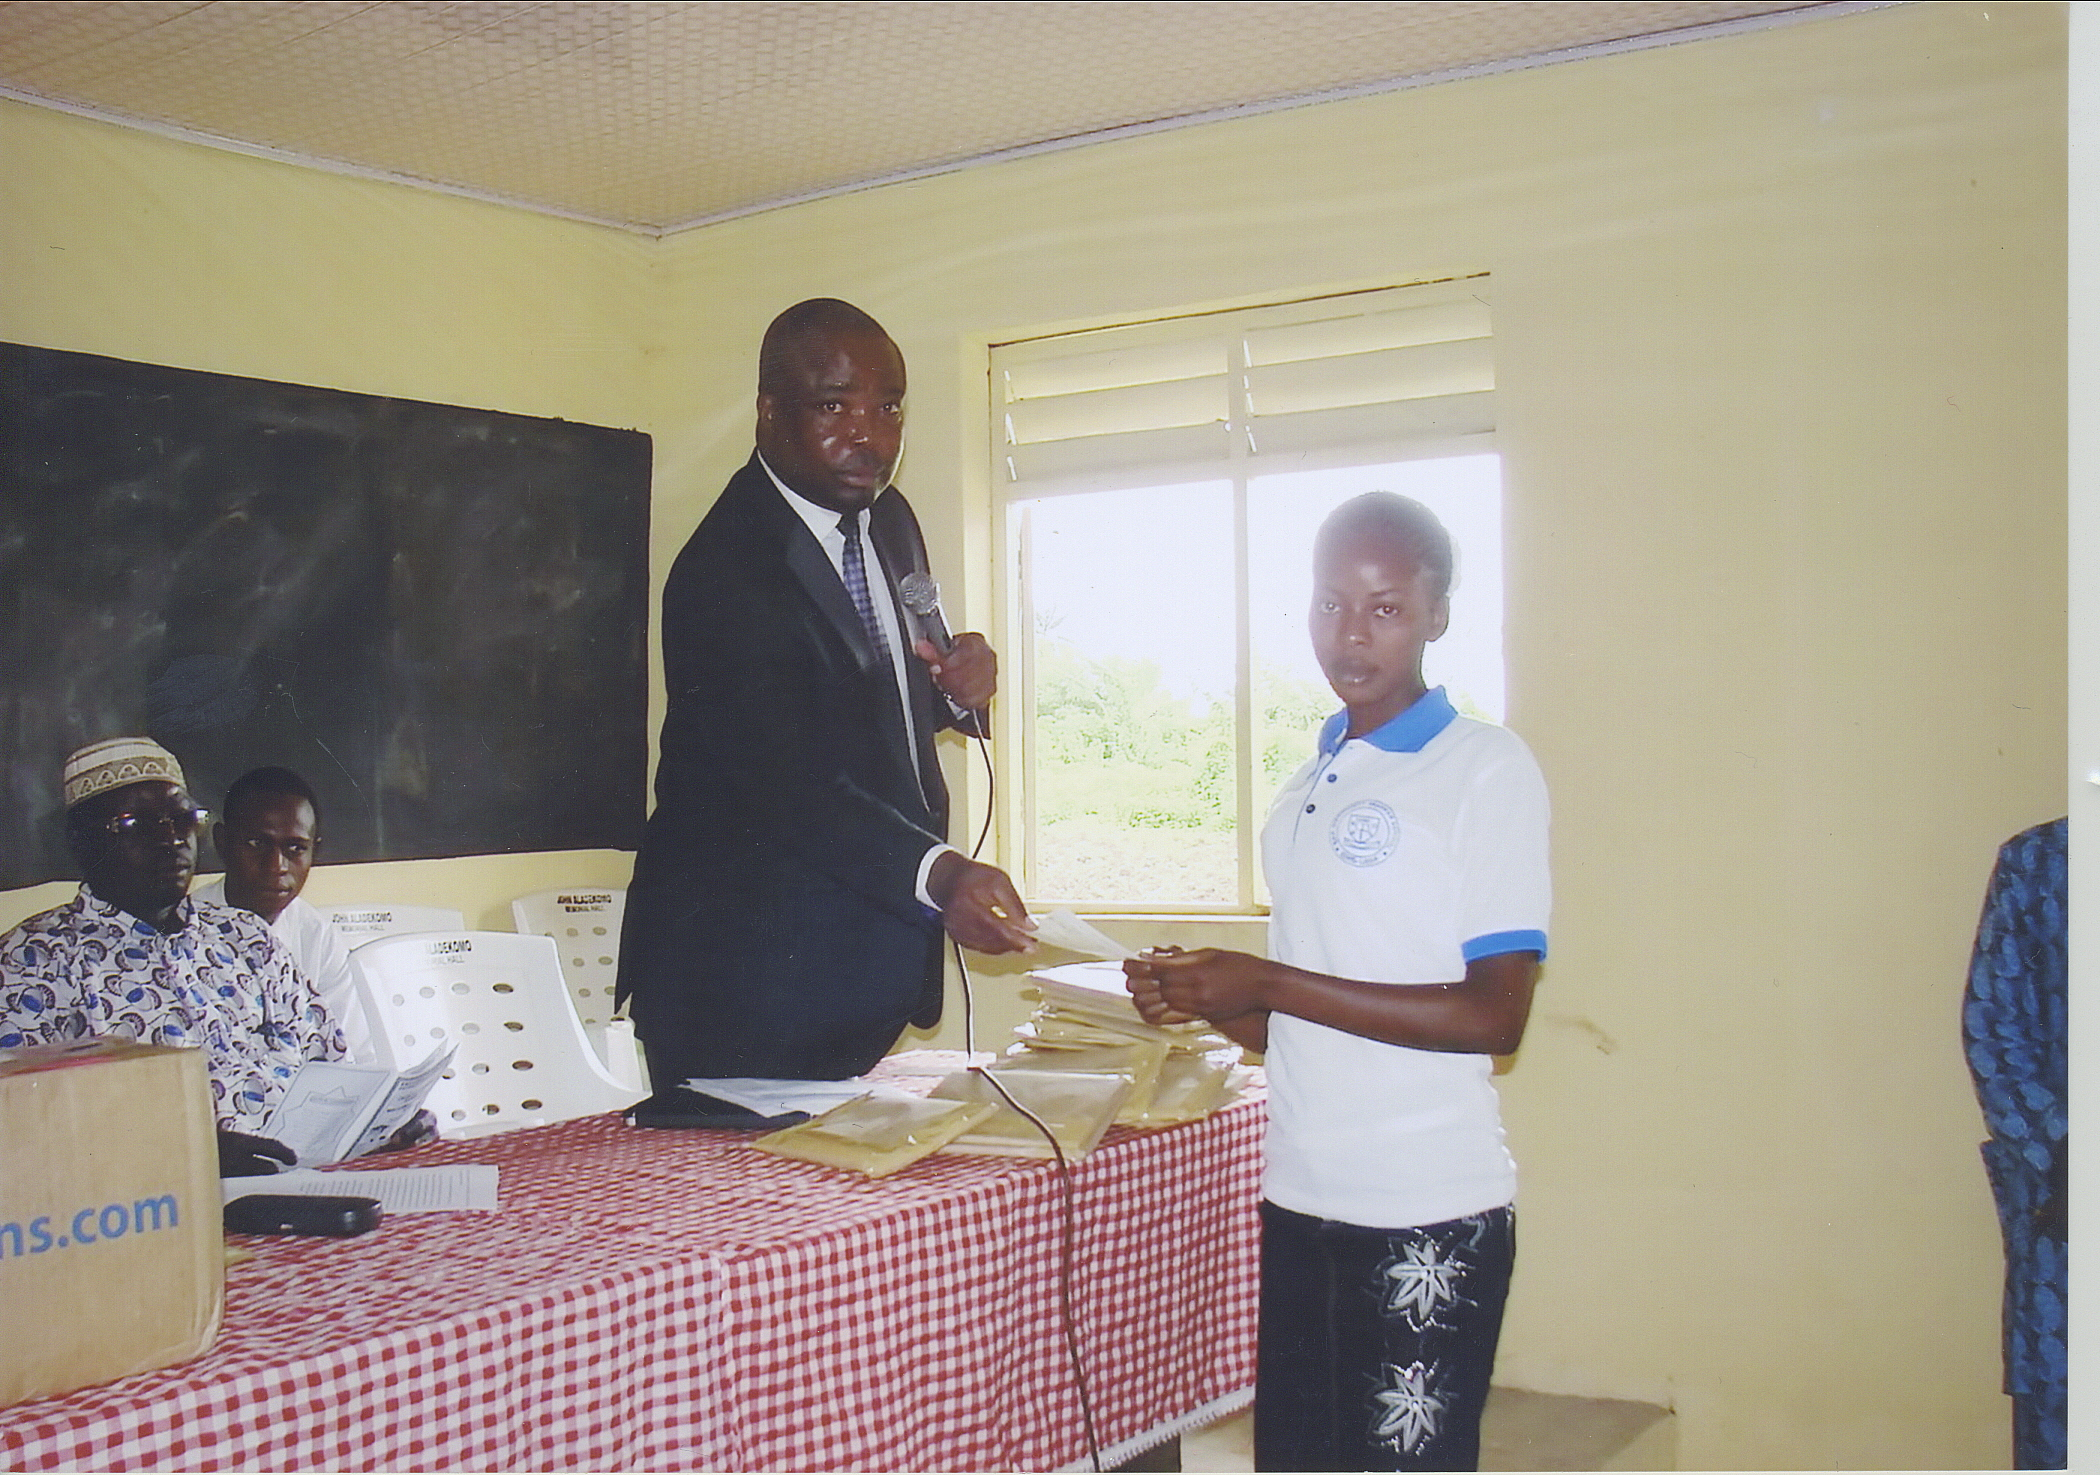 Female Students Receiving An Award From Barrister Folade